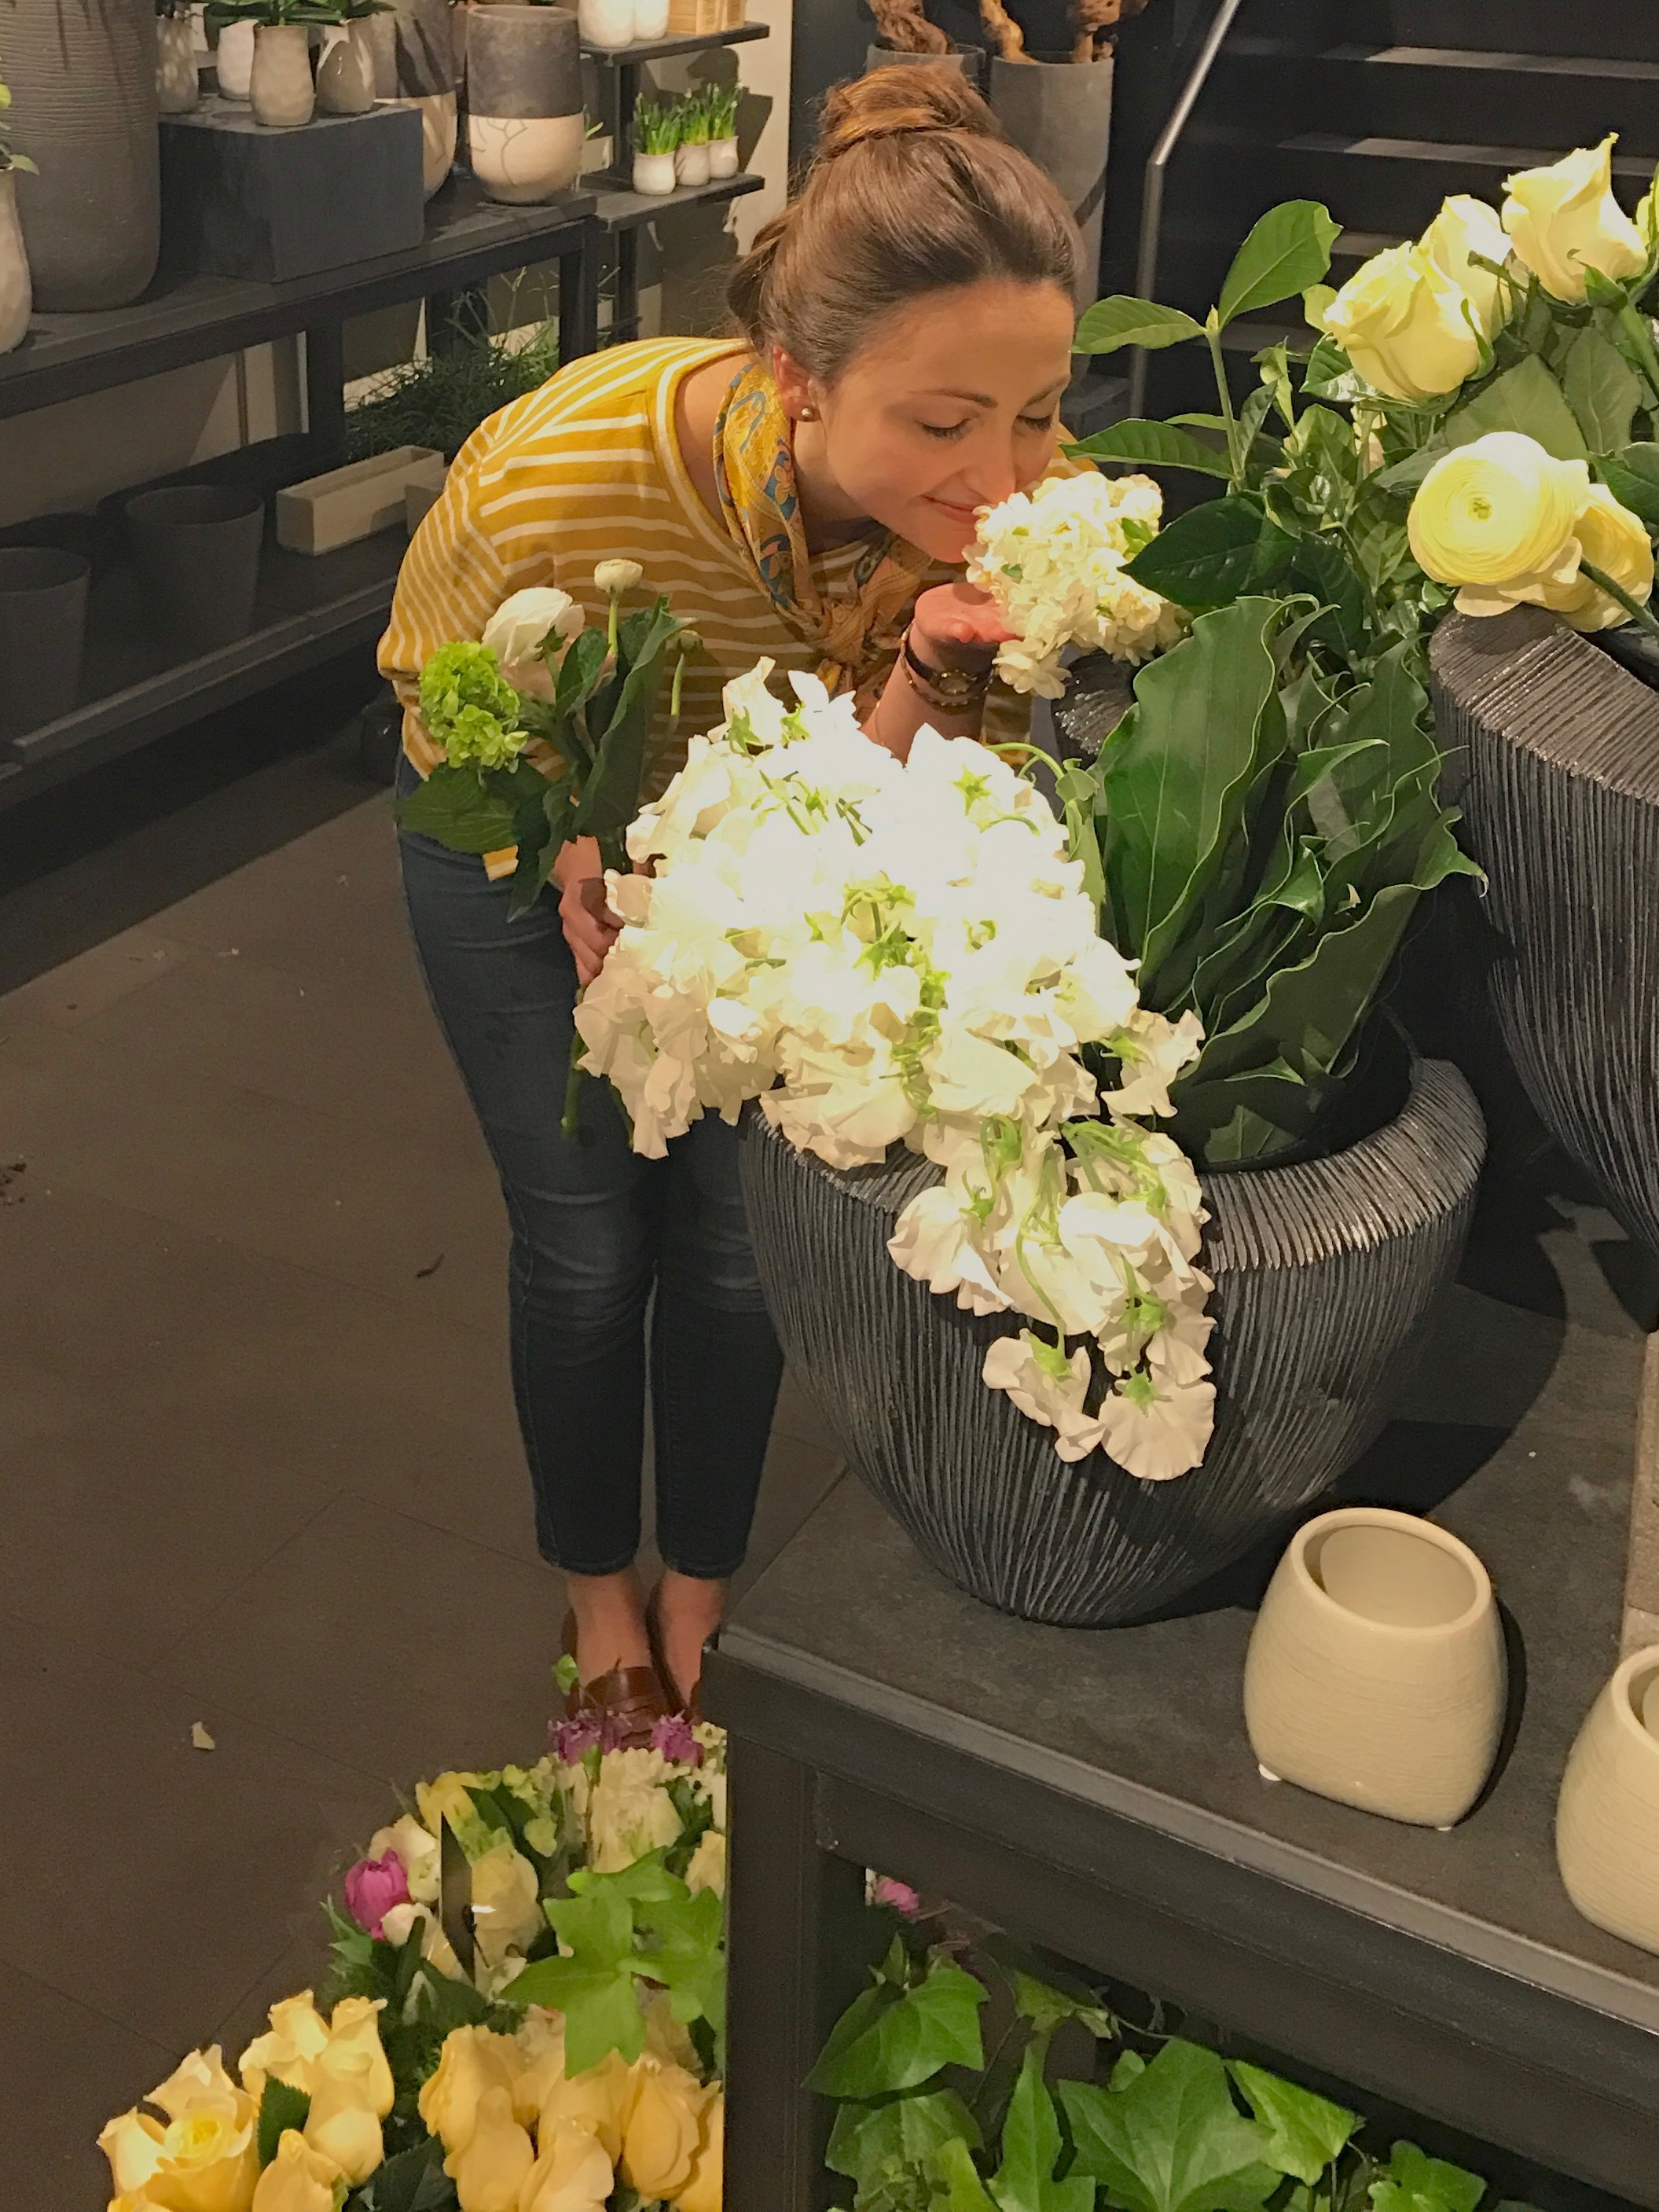 Thank you to Winston's Flowers for letting me come in, having a little flower photo shoot, and helping me to build my bouquet. You made it so much easier to ask for help with my florals and my photos! If you're in need of any flowers or gifts in Boston, stop in and have fun!